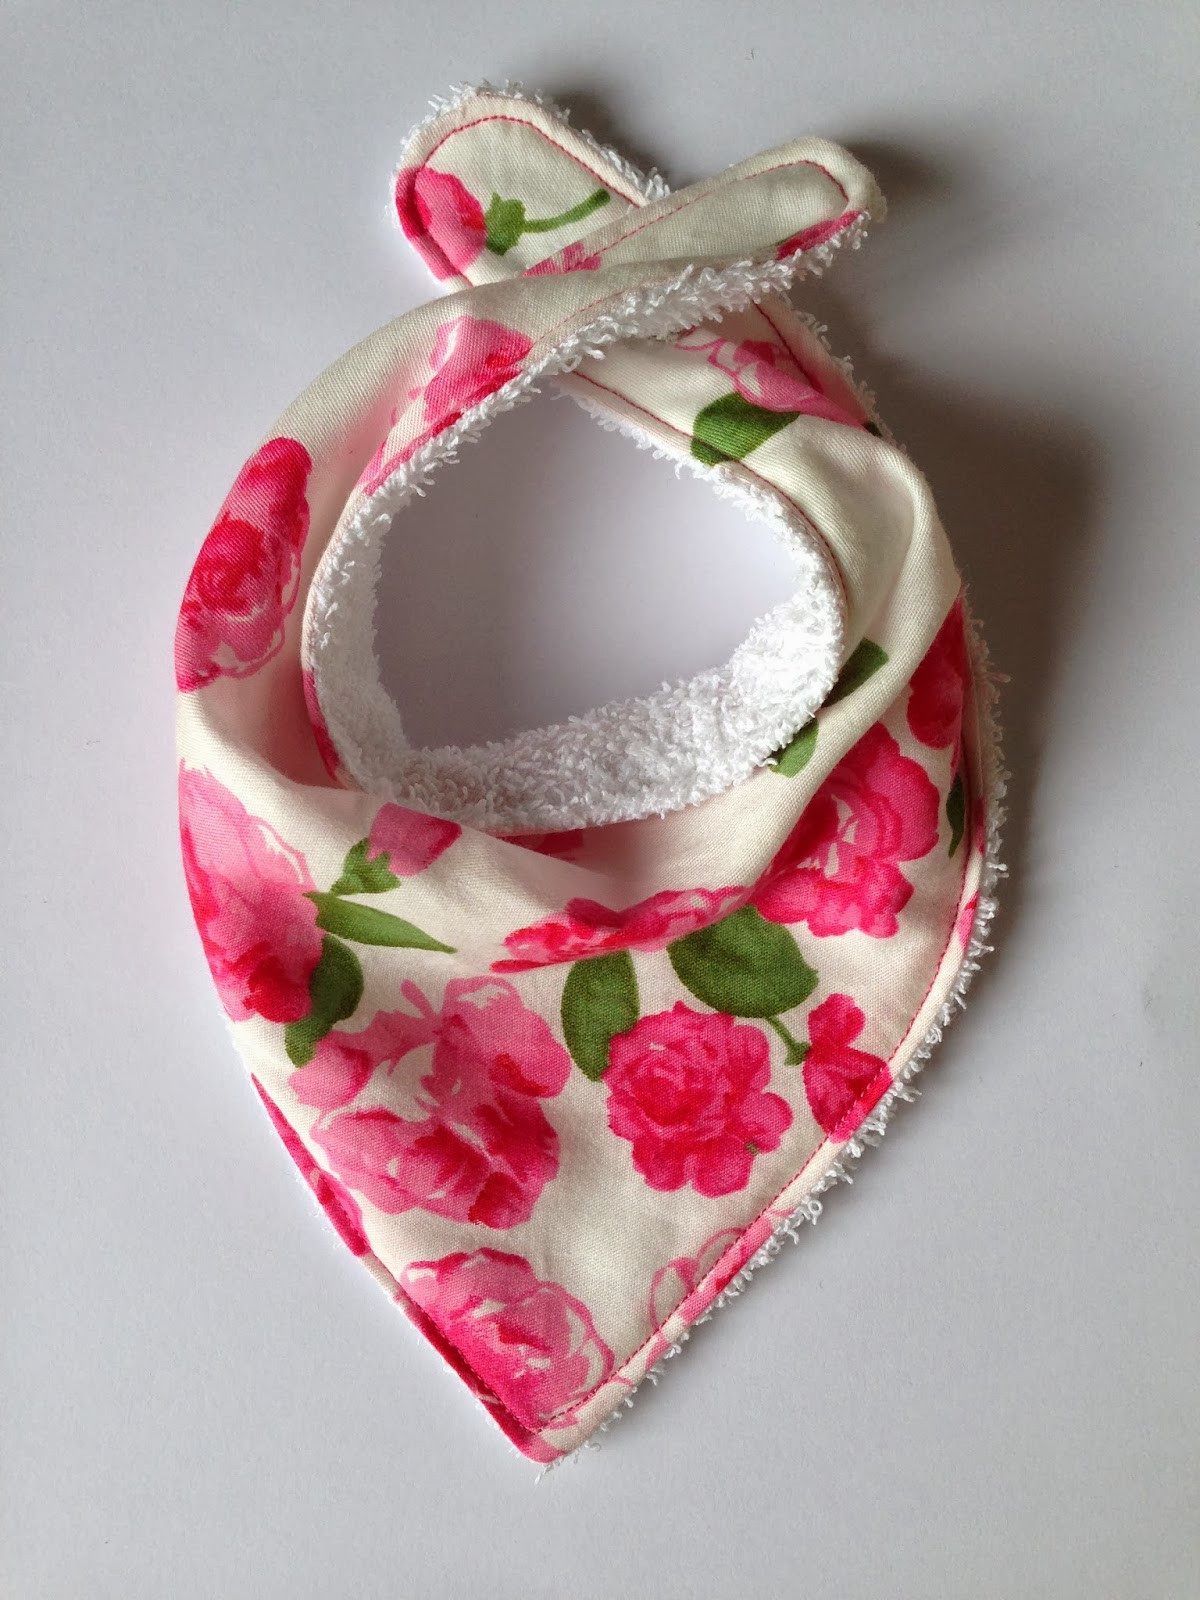 Best ideas about DIY Baby Bibs . Save or Pin Bundles and Buttons Dribble bibs DIY Now.